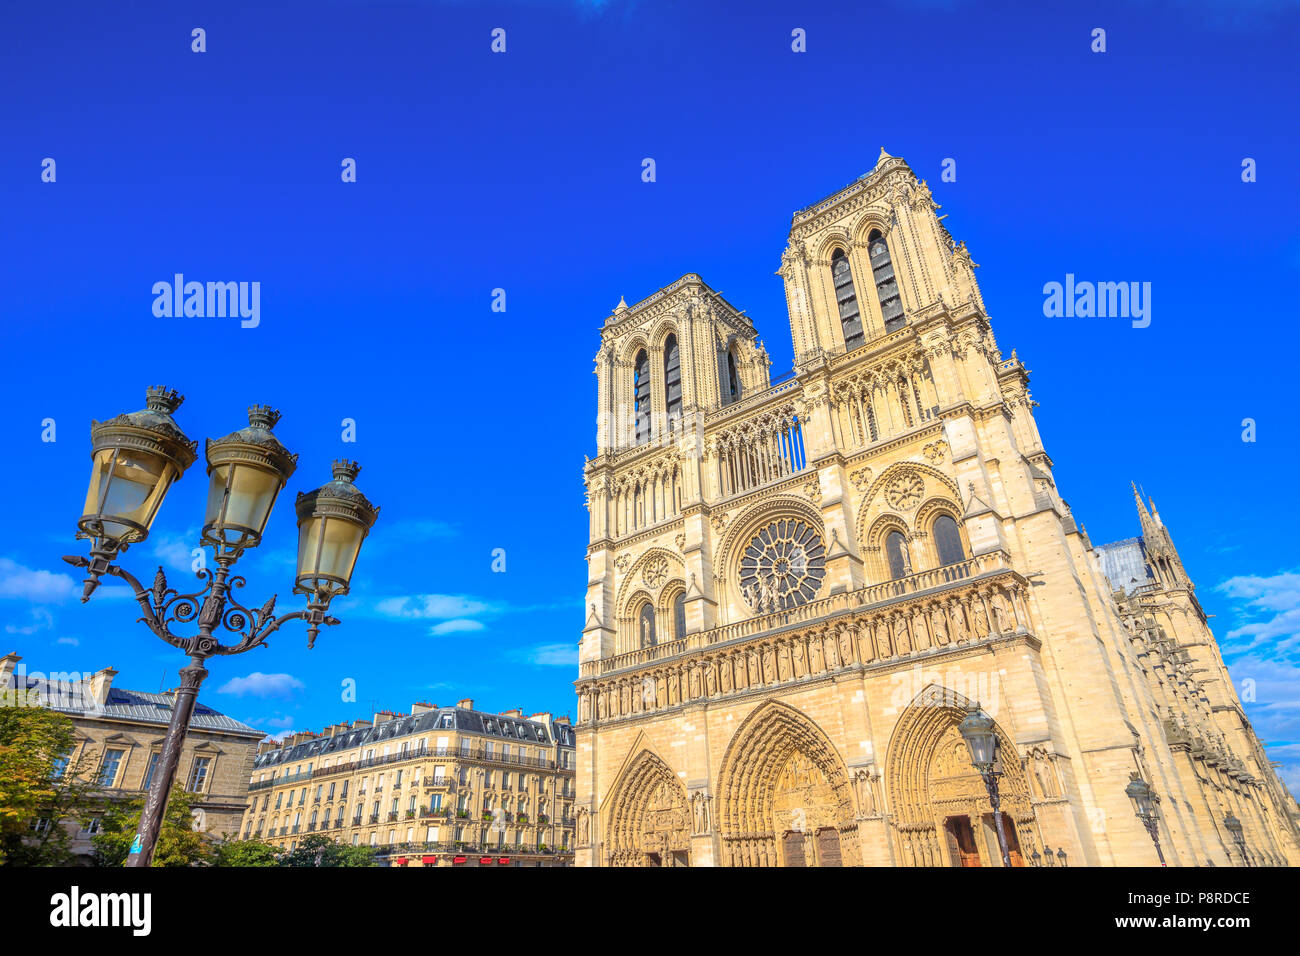 Typical iron street lamp with Notre Dame de Paris in the background, popular landmark and cathedral of the capital of France. Gothic French architecture of Our Lady of Paris in a sunny day, blue sky. Stock Photo